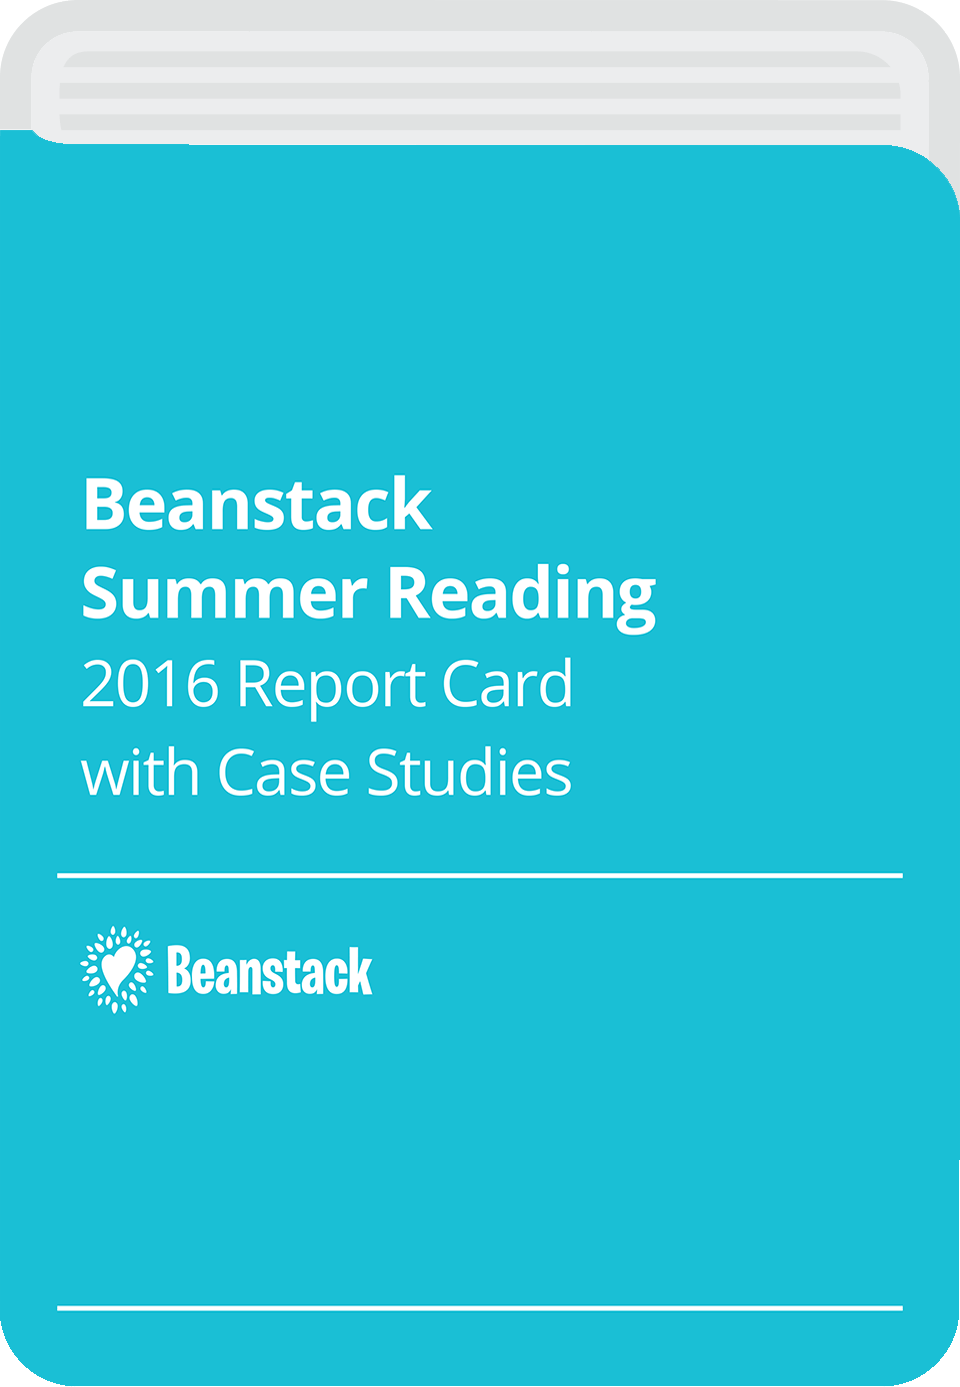 Beanstack Summer Reading 2016 Case Study